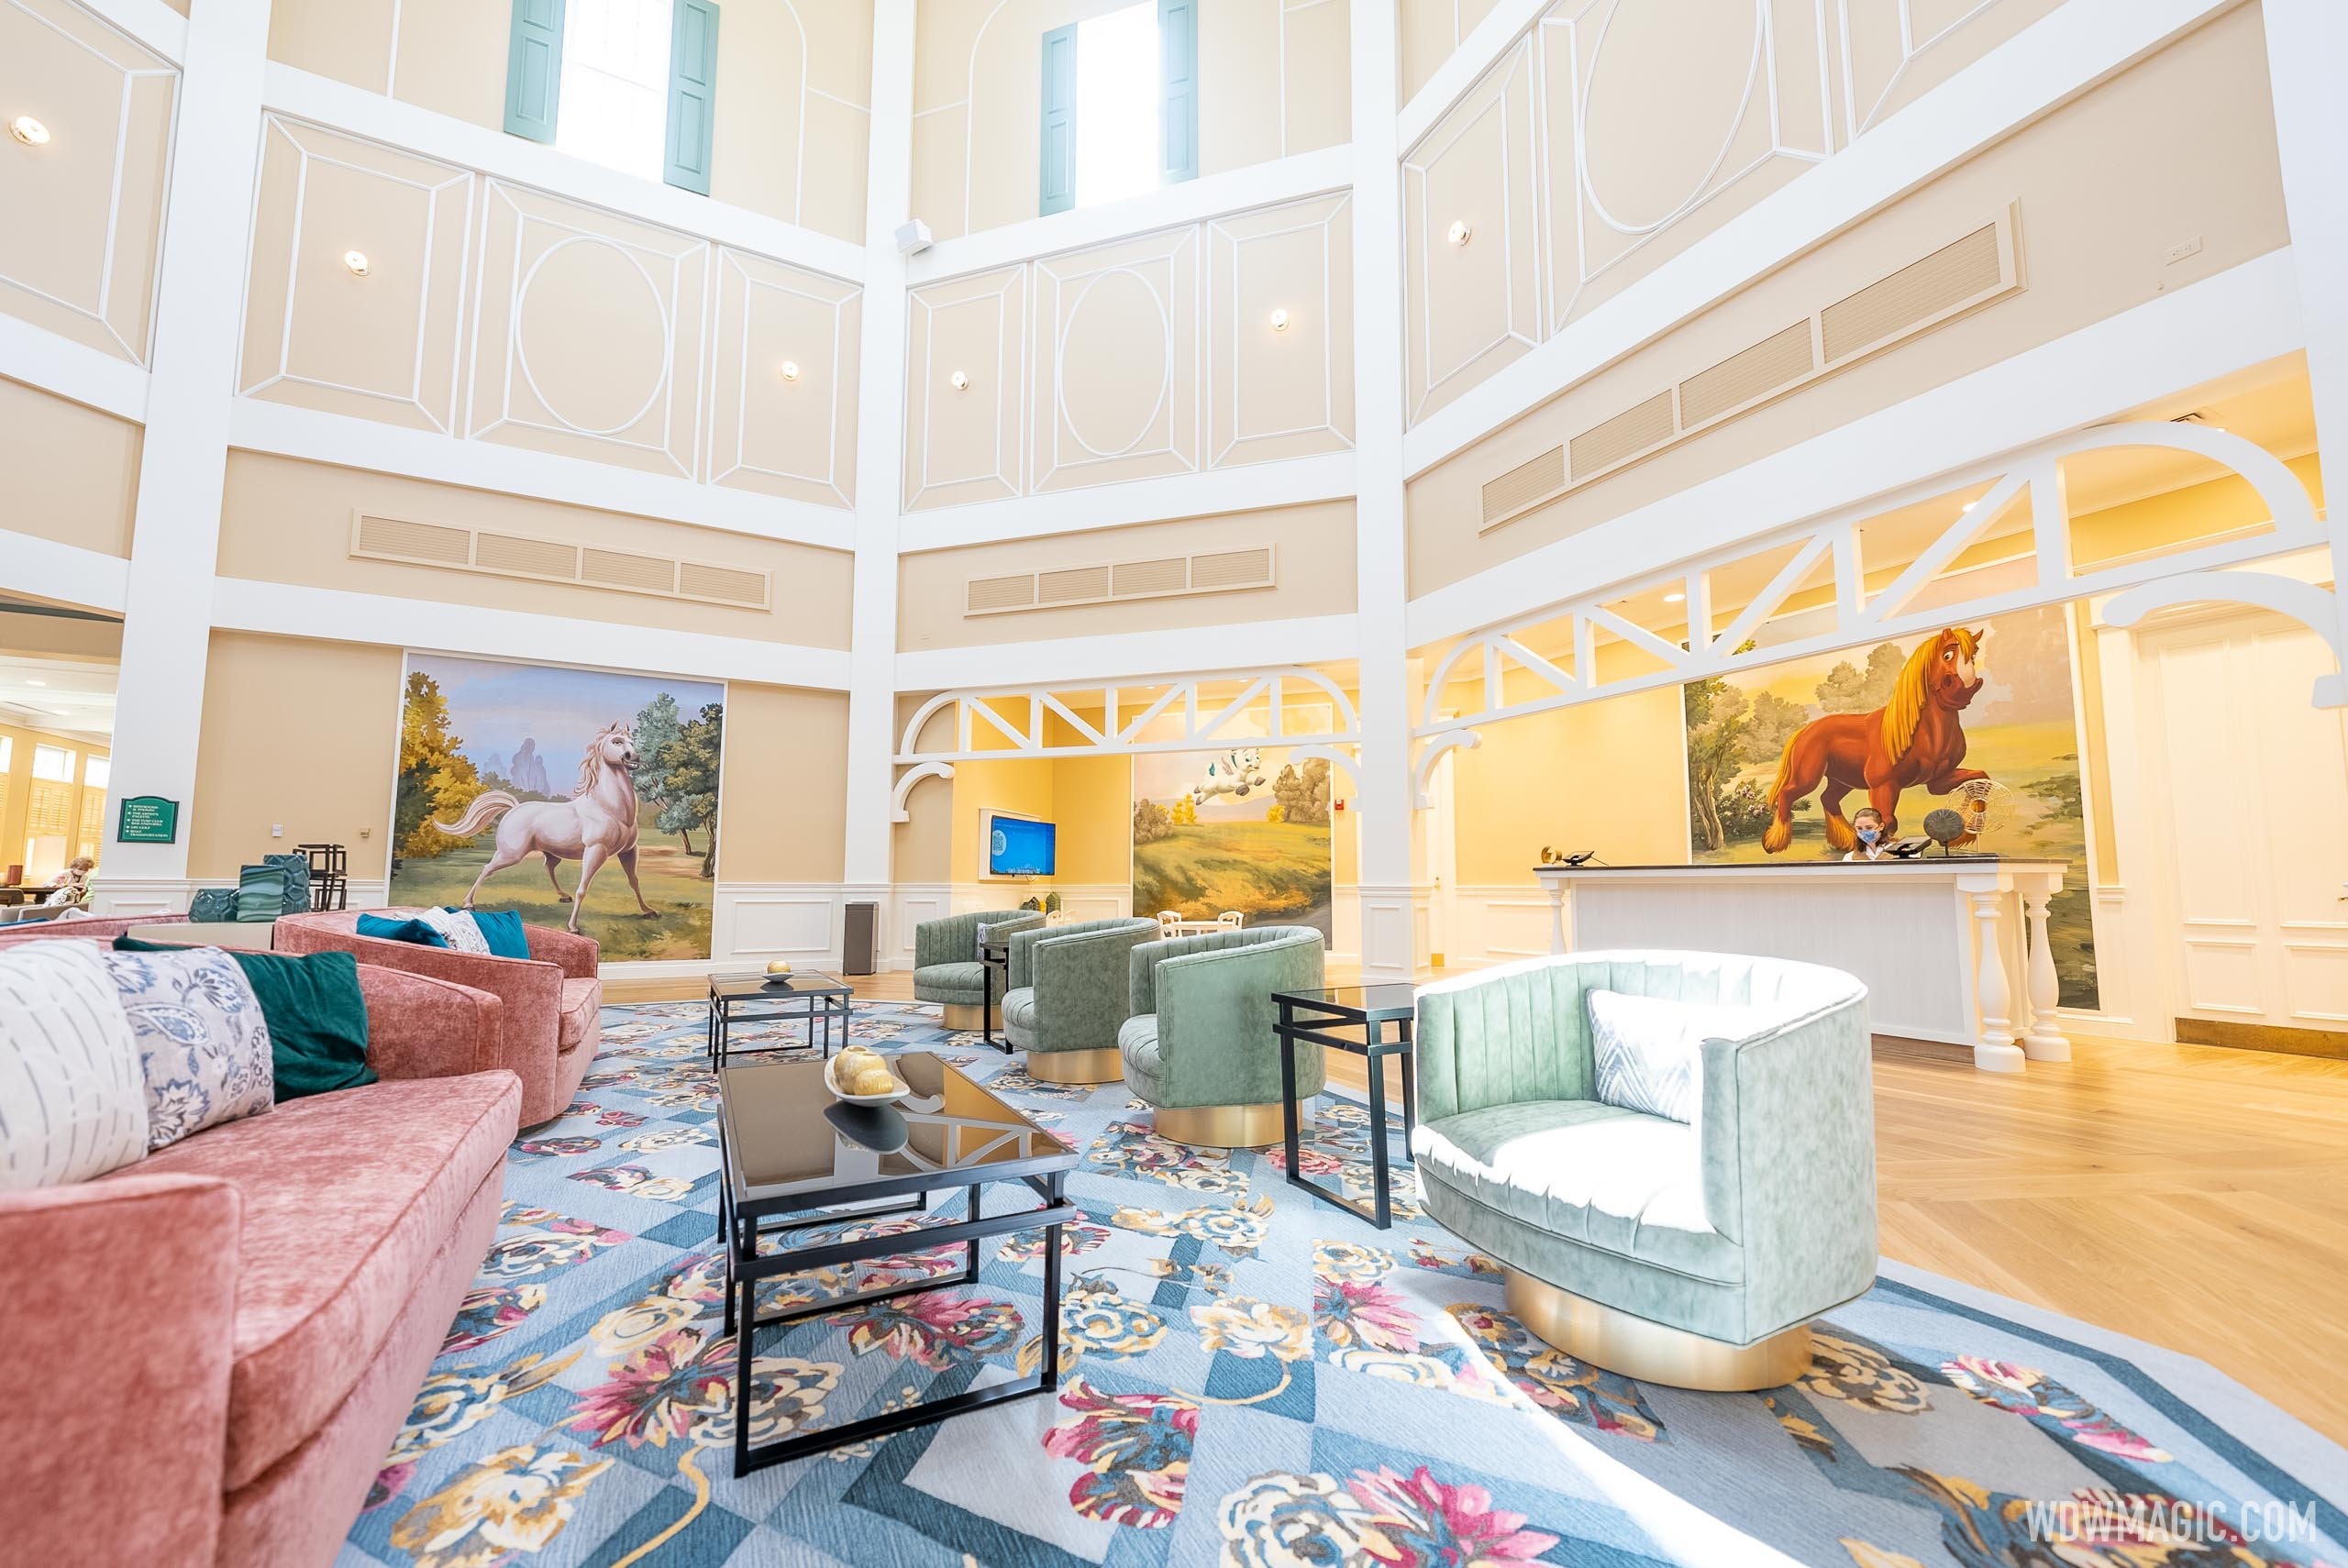 A look inside the all-new lobby at Disney's Saratoga Springs Resort